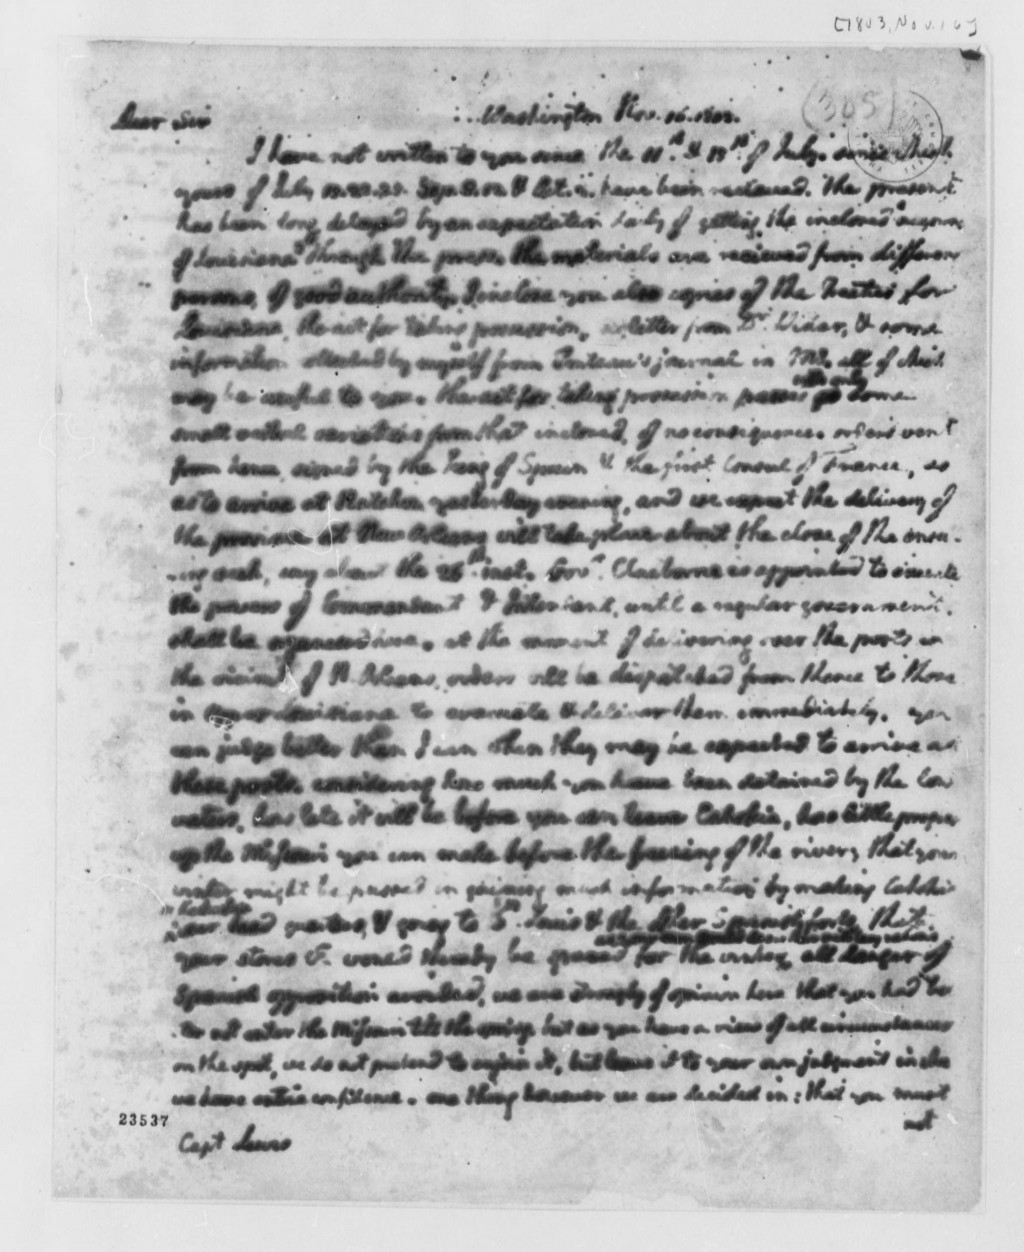 006 Essay Example Thomas Magnificent Jefferson On Education Questions Outline Large